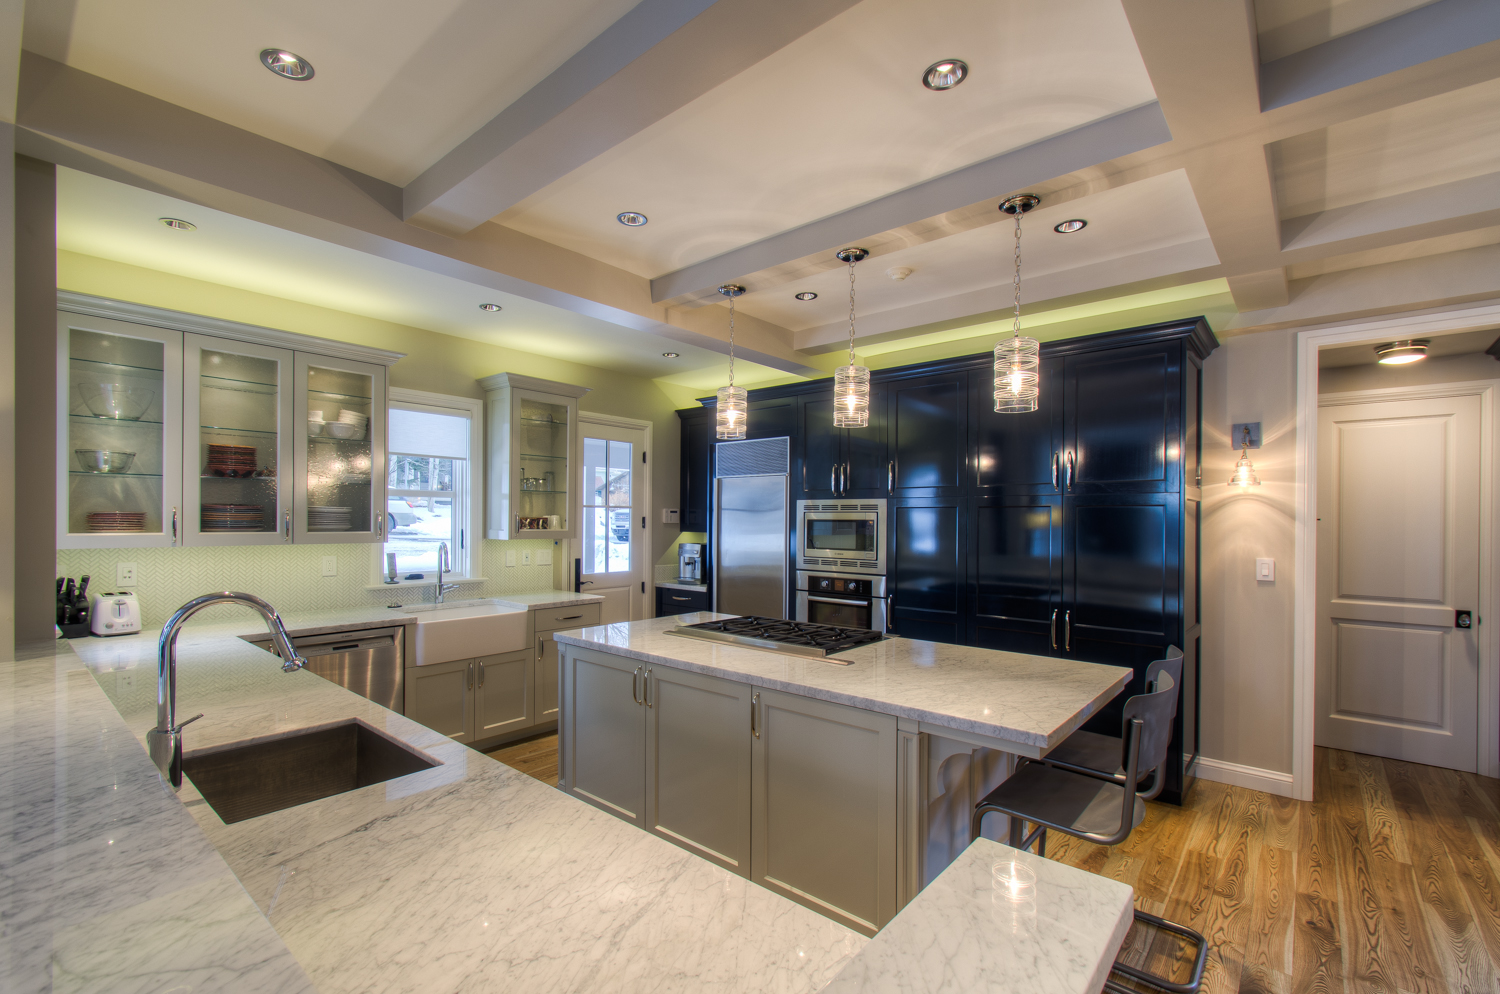 Full Kitchen with Spacious Countertops and Stainless Steel Appliances